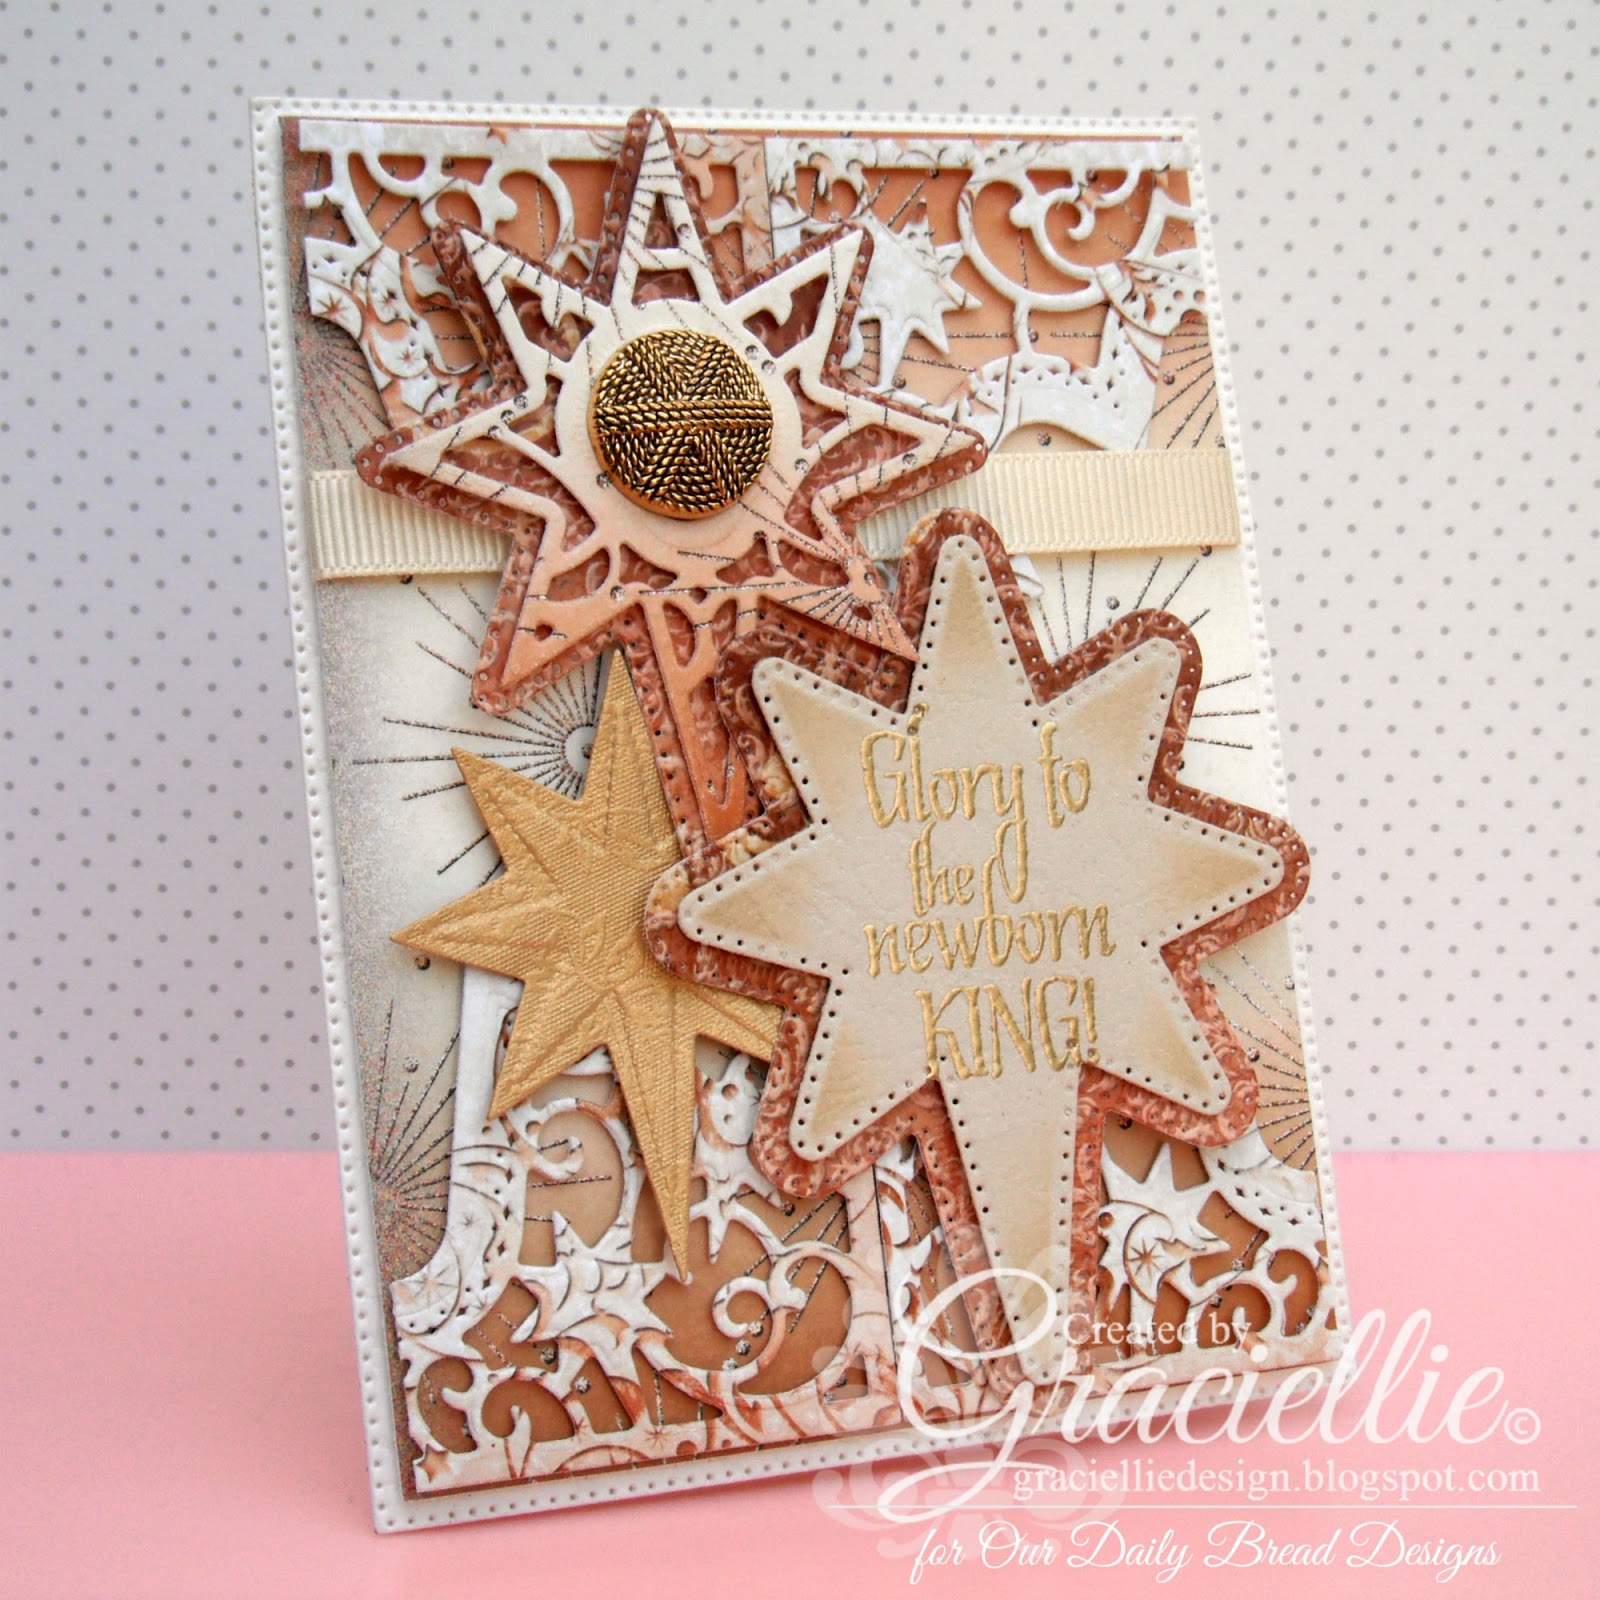 Stamps - Our Daily Bread Designs Silk Stars, ODBD Custom Flourished Star Pattern Die, ODBD Custom Splendorous Stars Dies, ODBD Winter Paper Collection 2014